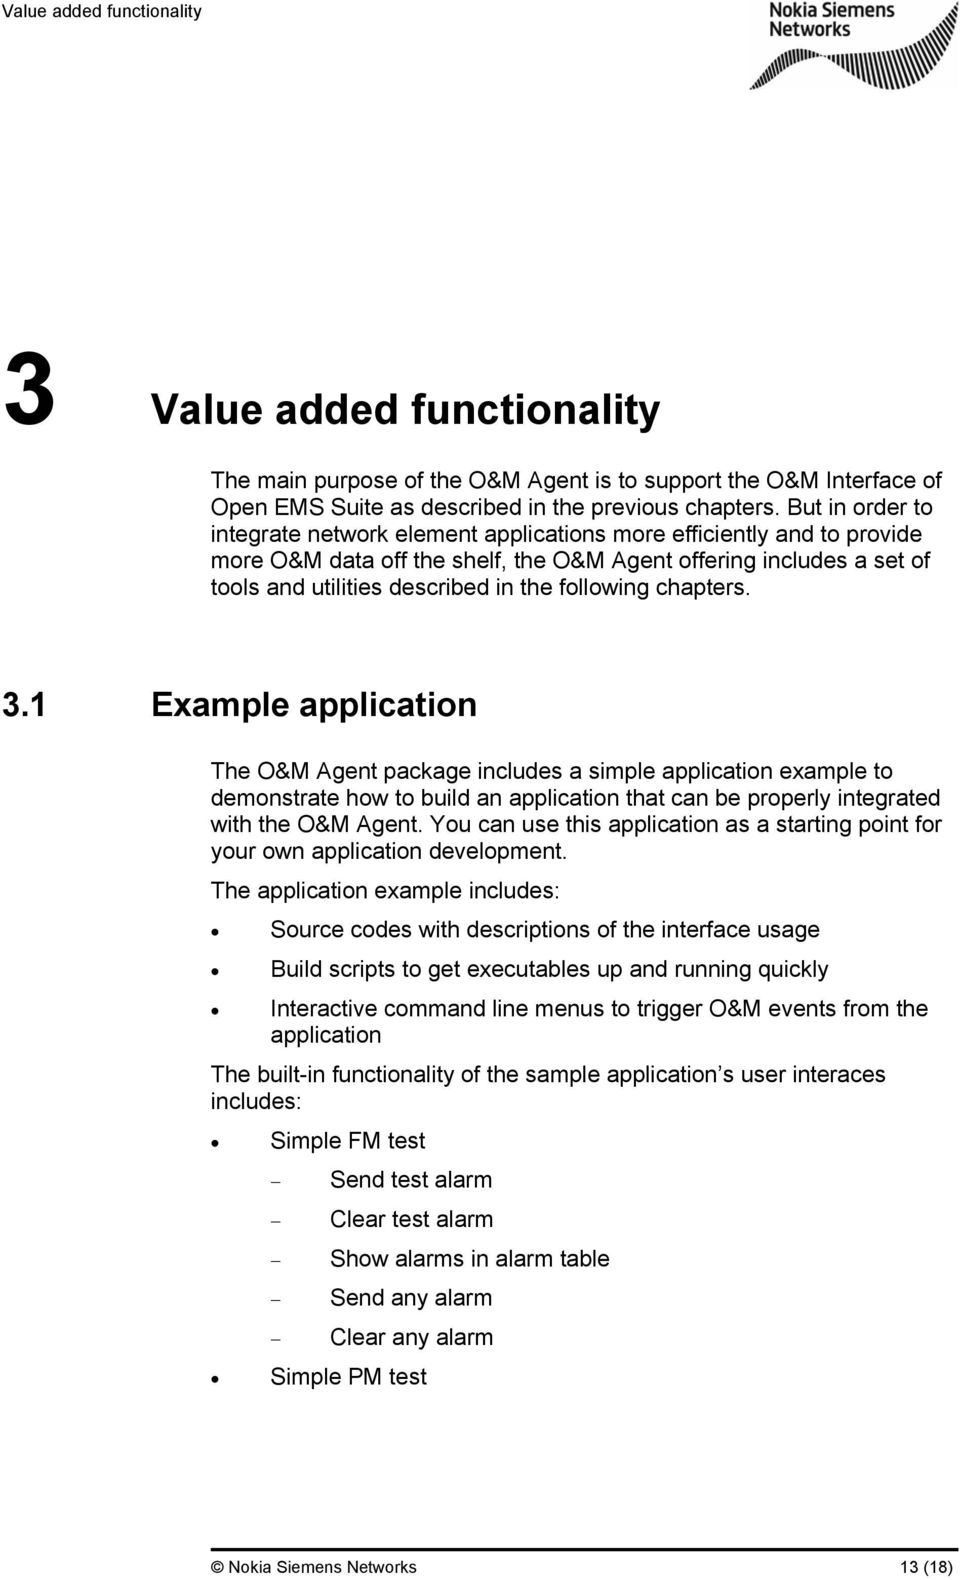 following chapters. 3.1 Example application The O&M Agent package includes a simple application example to demonstrate how to build an application that can be properly integrated with the O&M Agent.